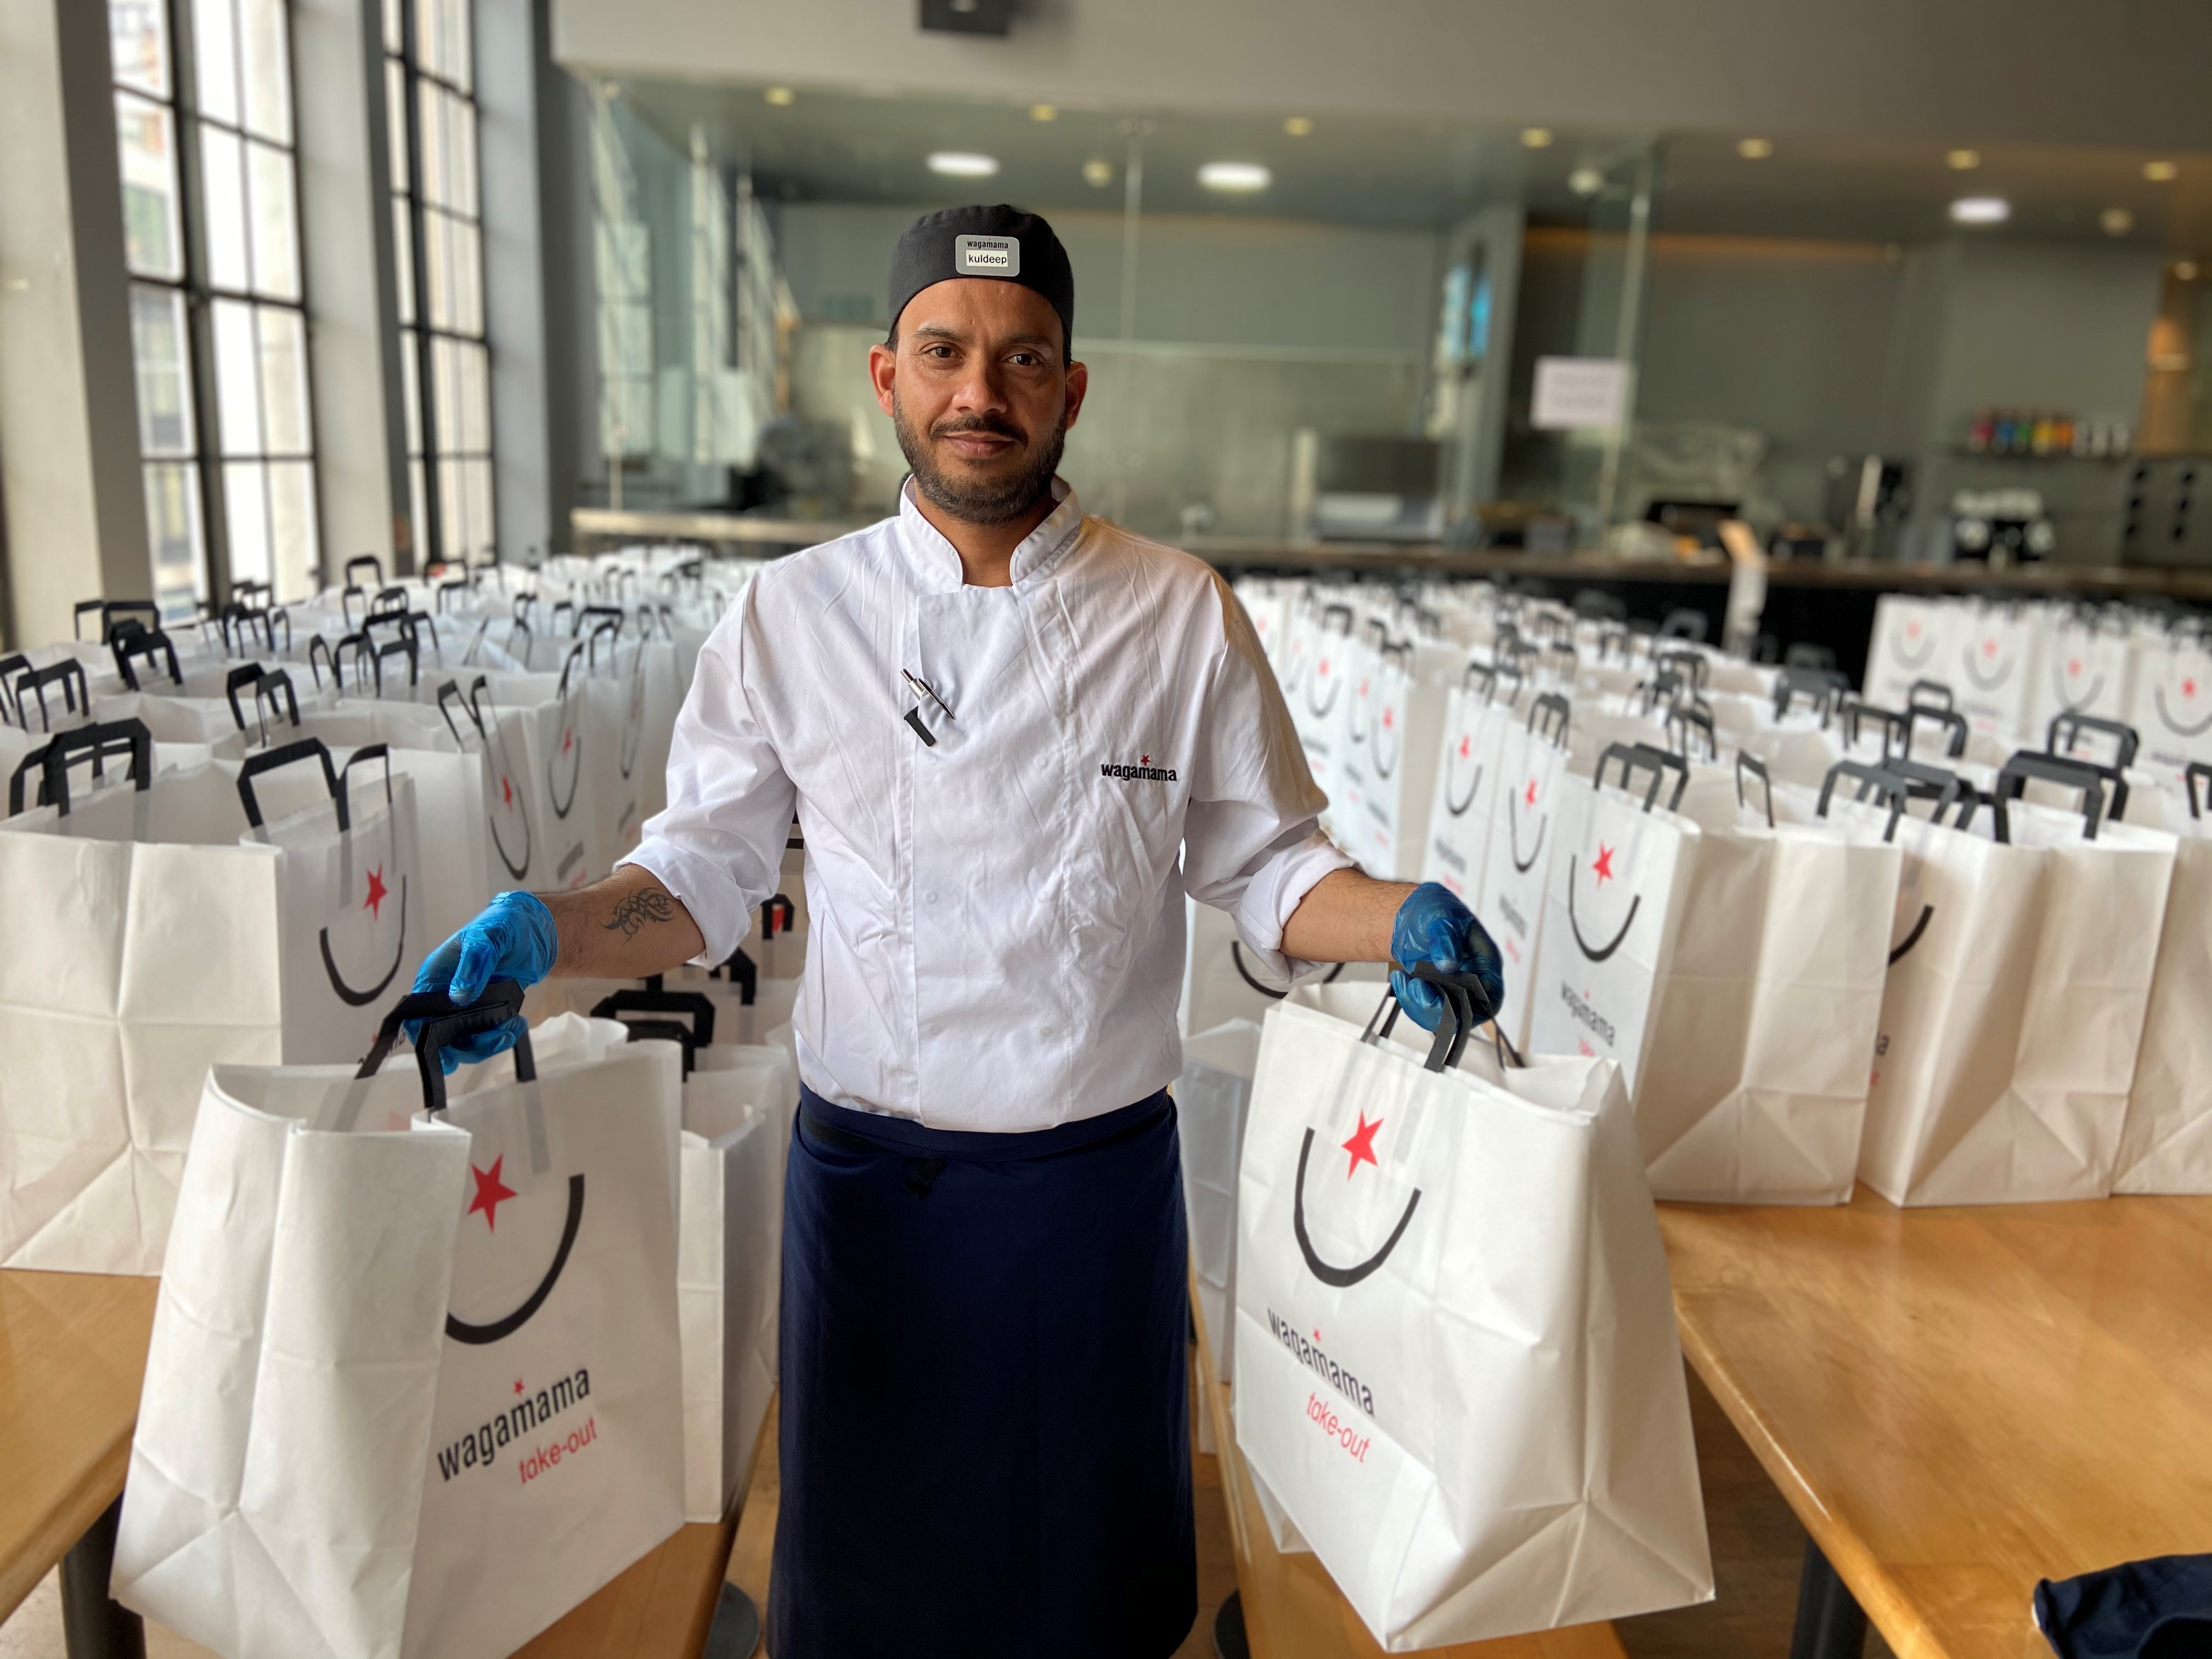 A Wagamama employee holding two takeaway bags